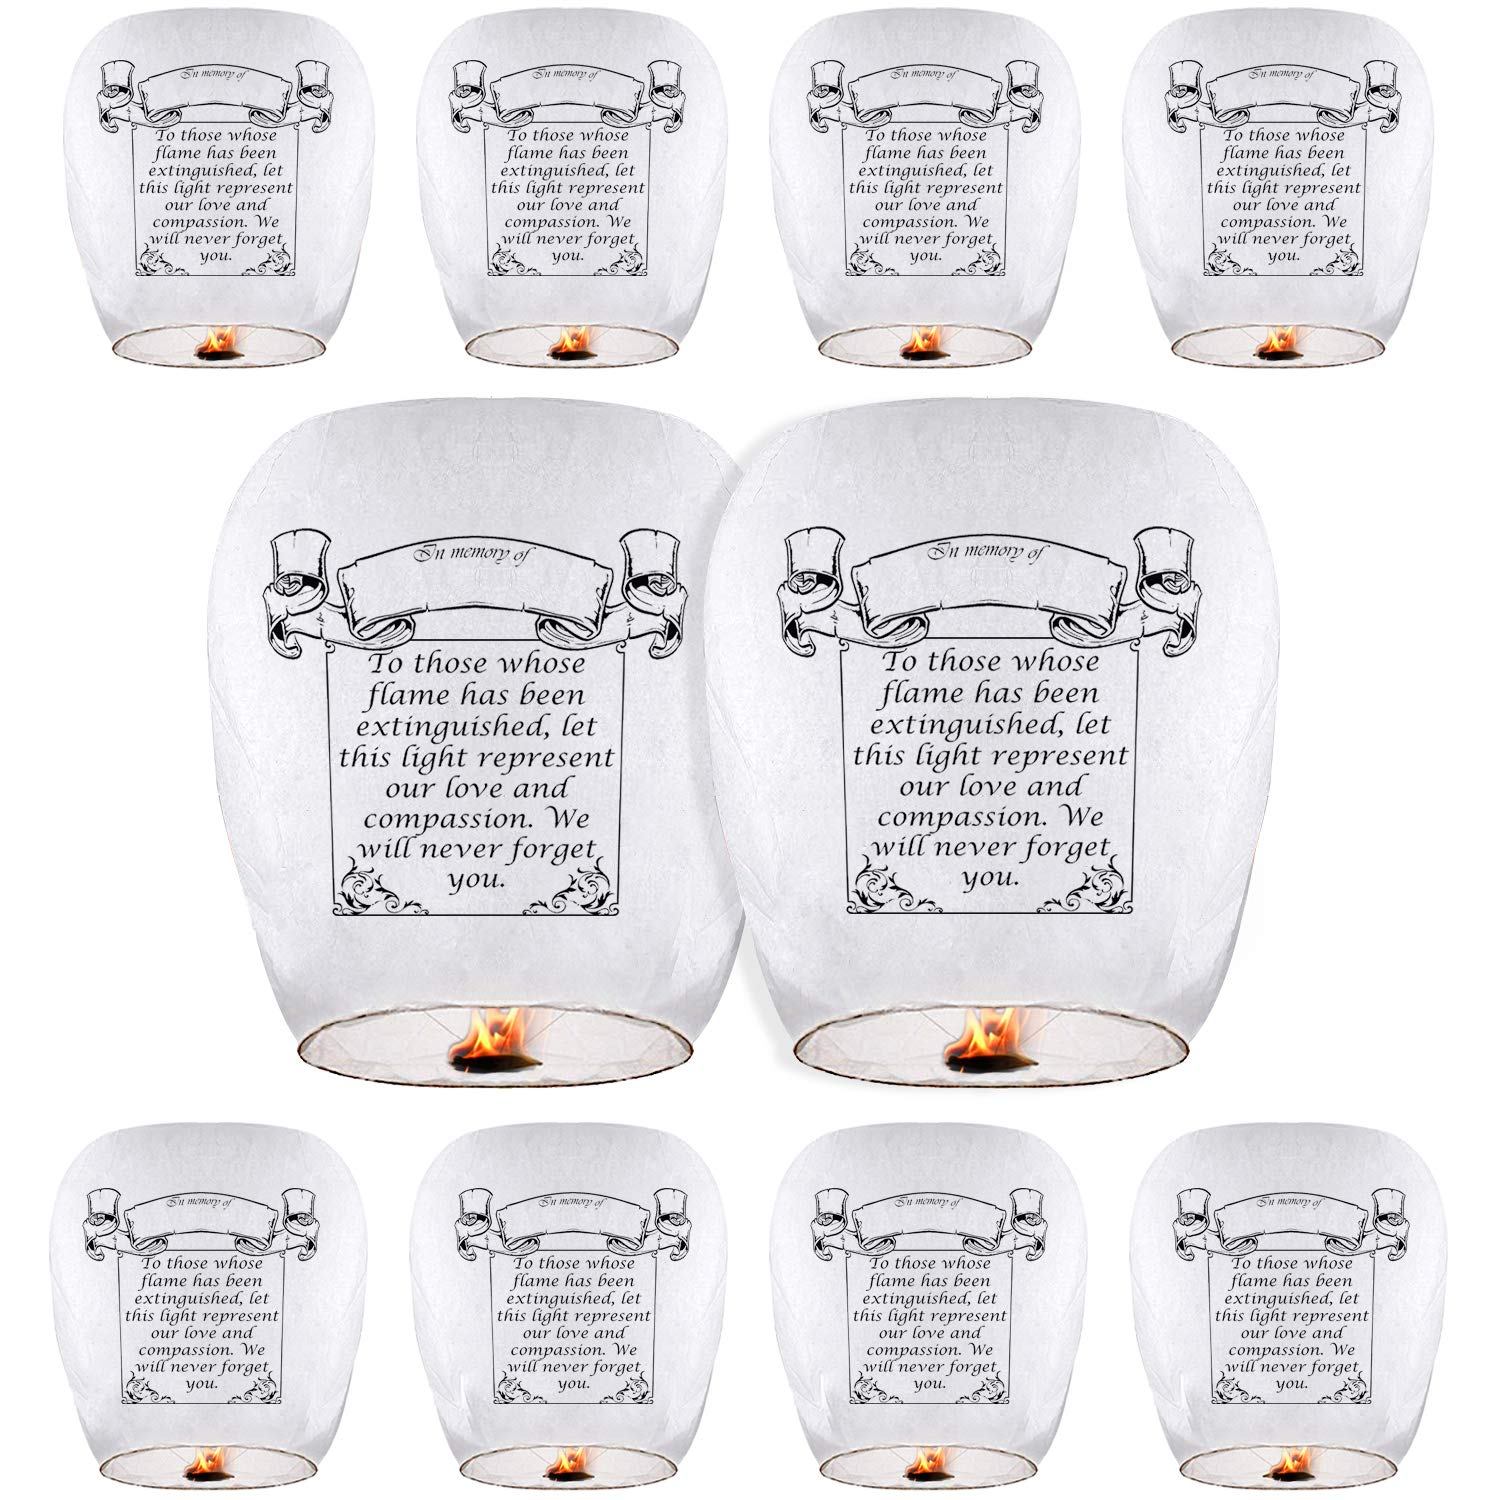 Sky Lanterns & Chinese Lanterns (10 Pack) ECO Friendly, 100% Biodegradable - Beautiful Lantern for White for Weddings, Birthdays, Memorials and Much More by Smeiker (10)